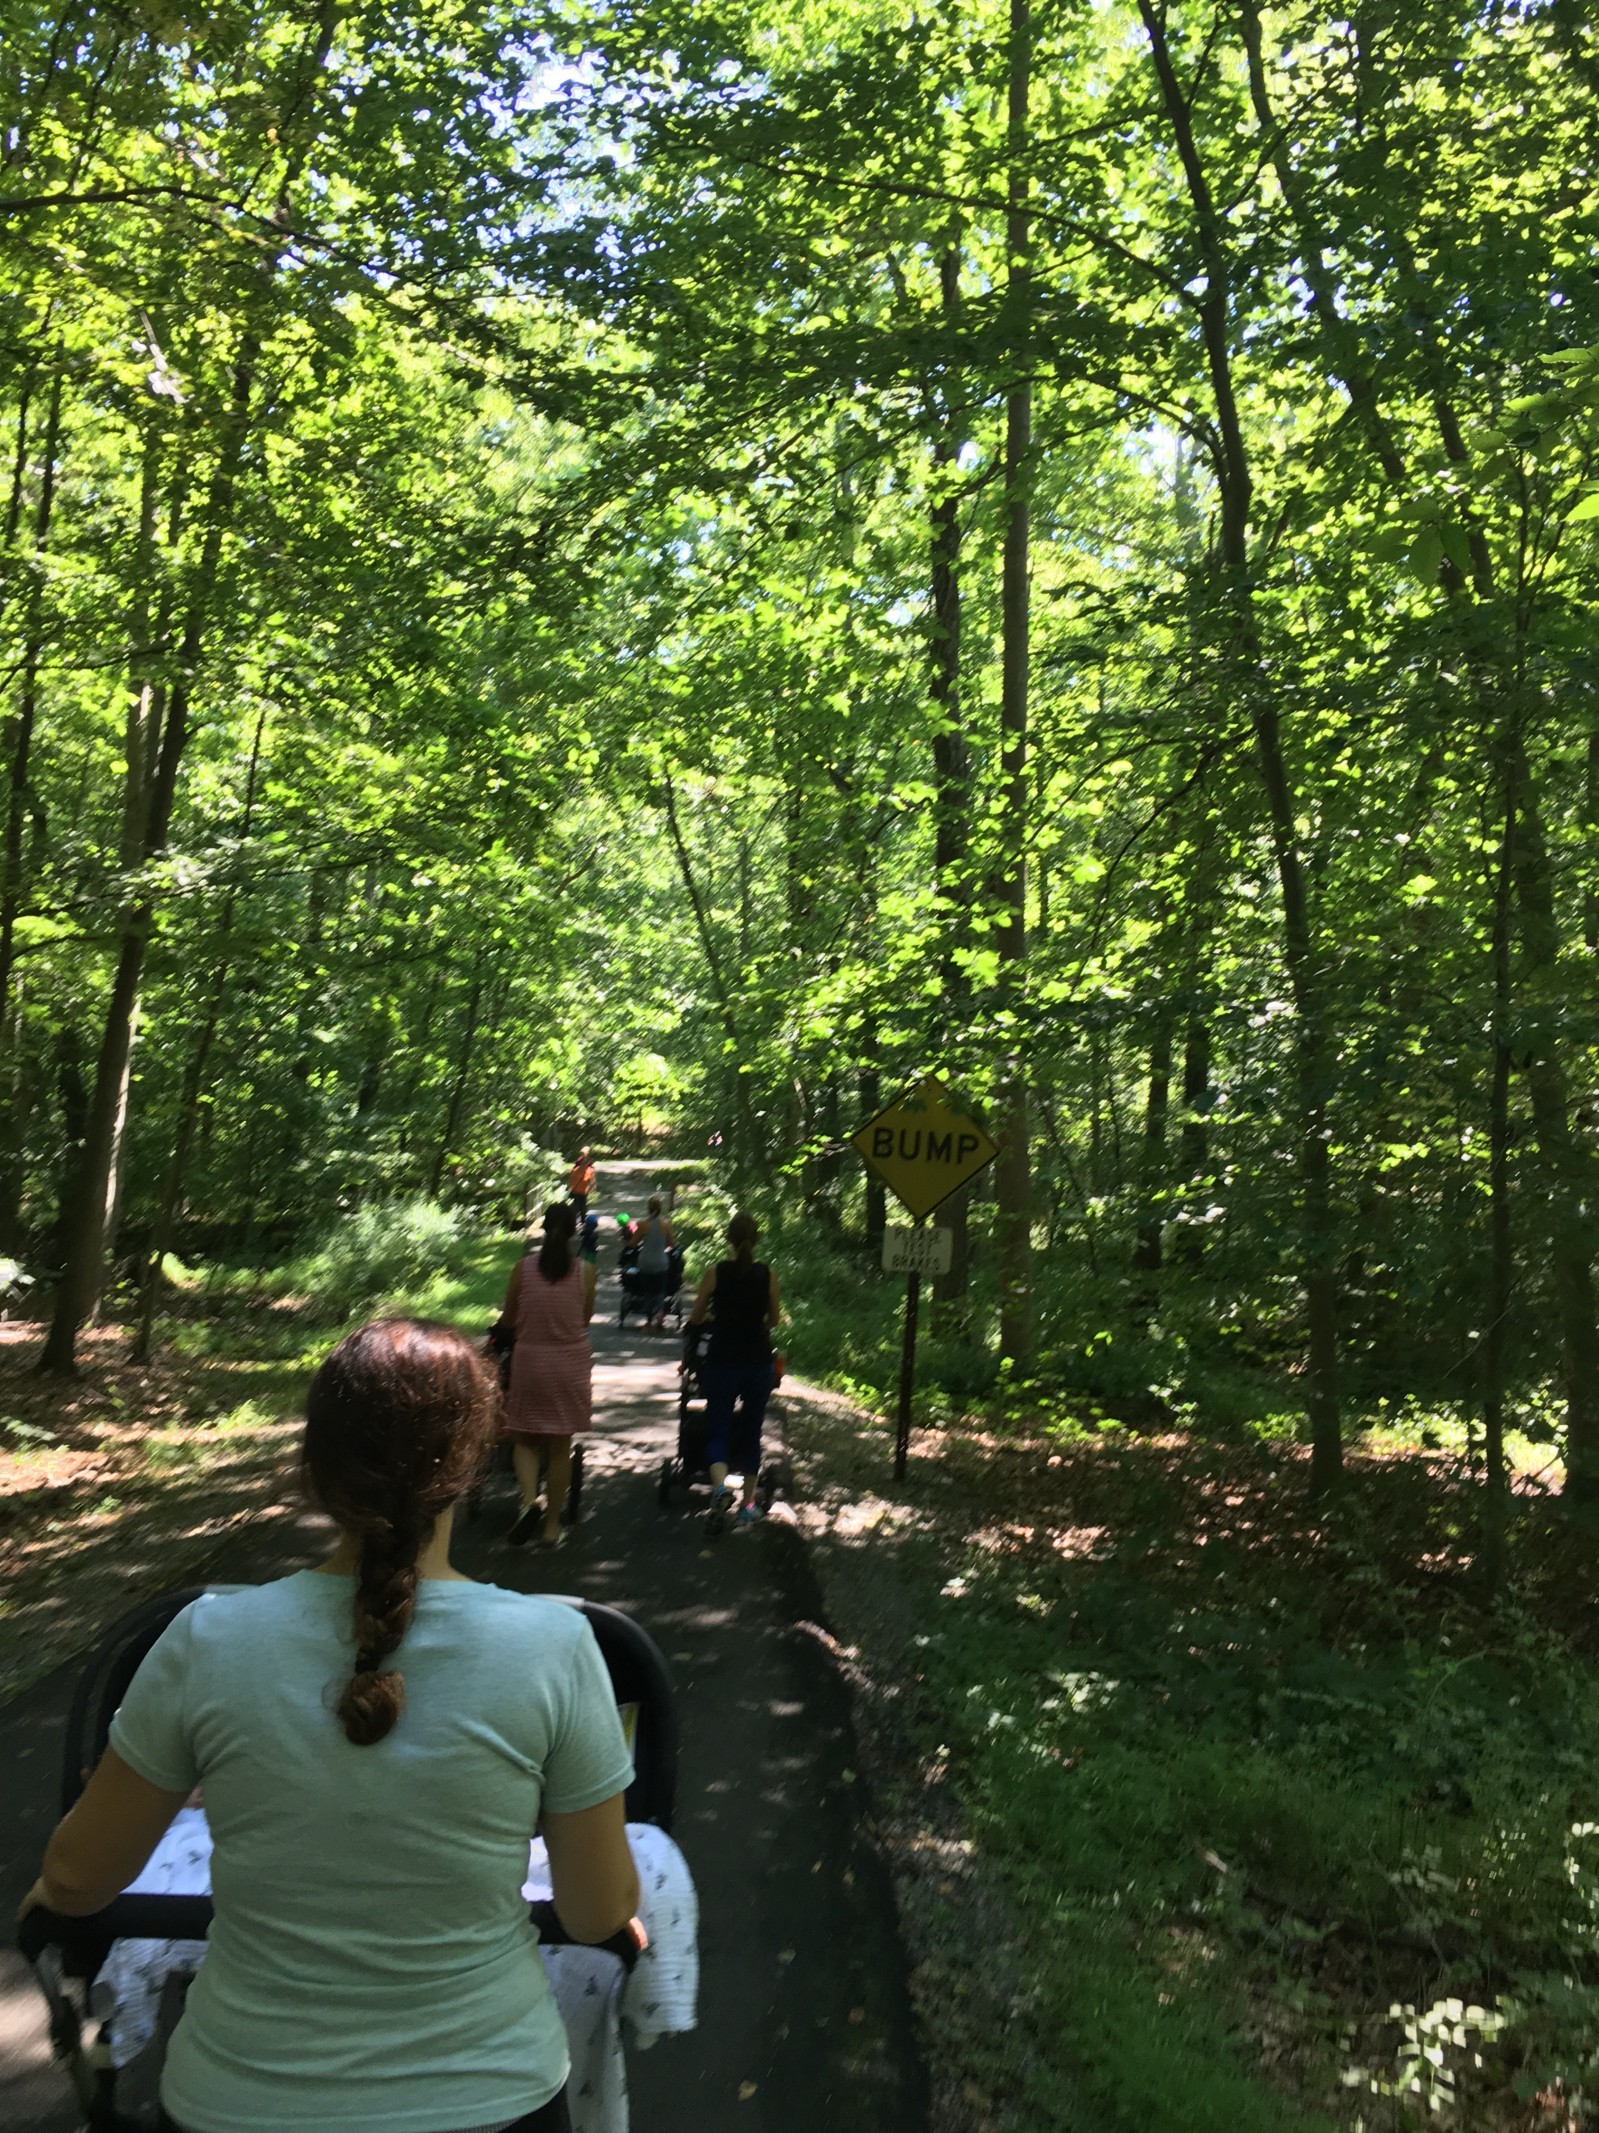 The 5 best child, infant, and stroller friendly hikes in Northern New Jersey